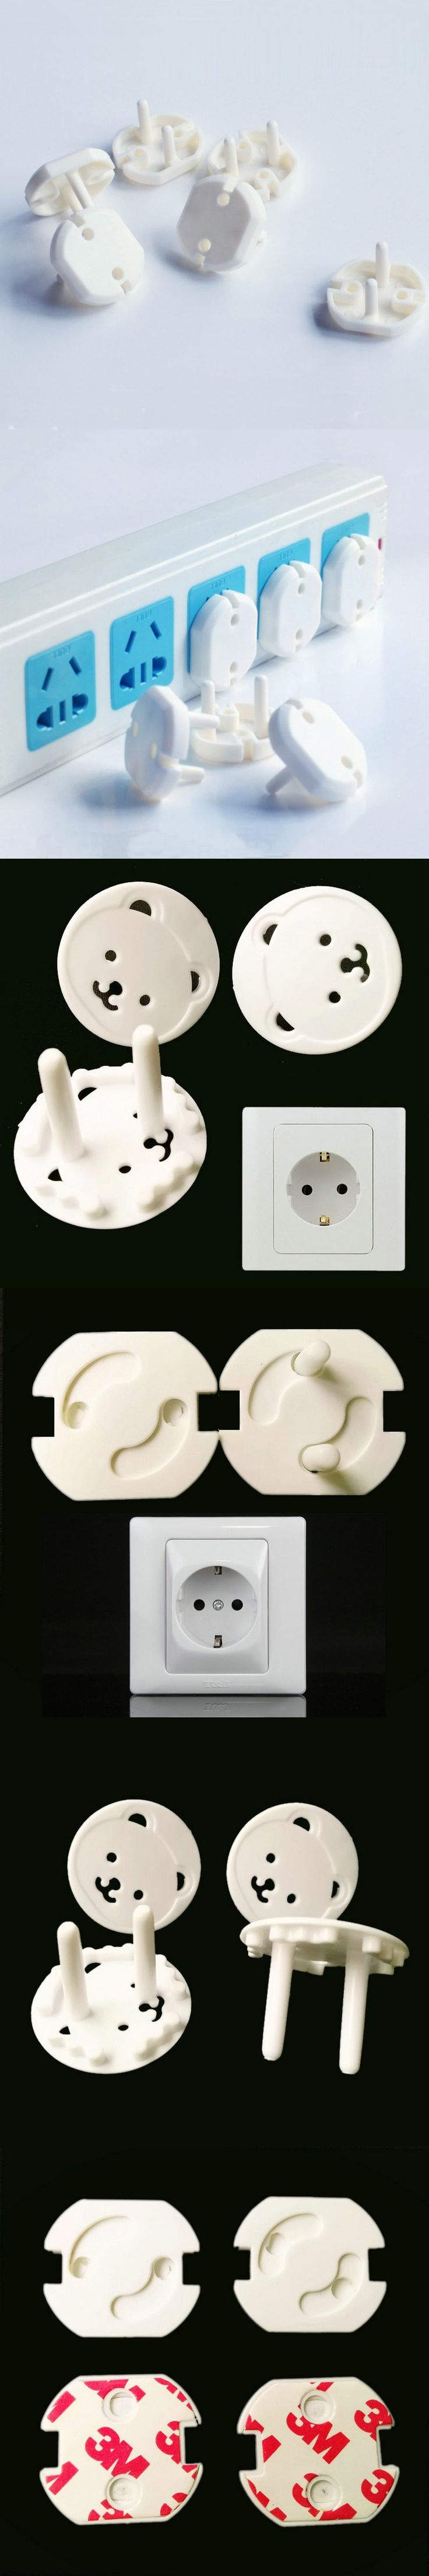 kinetic cistern outlet valve instructions